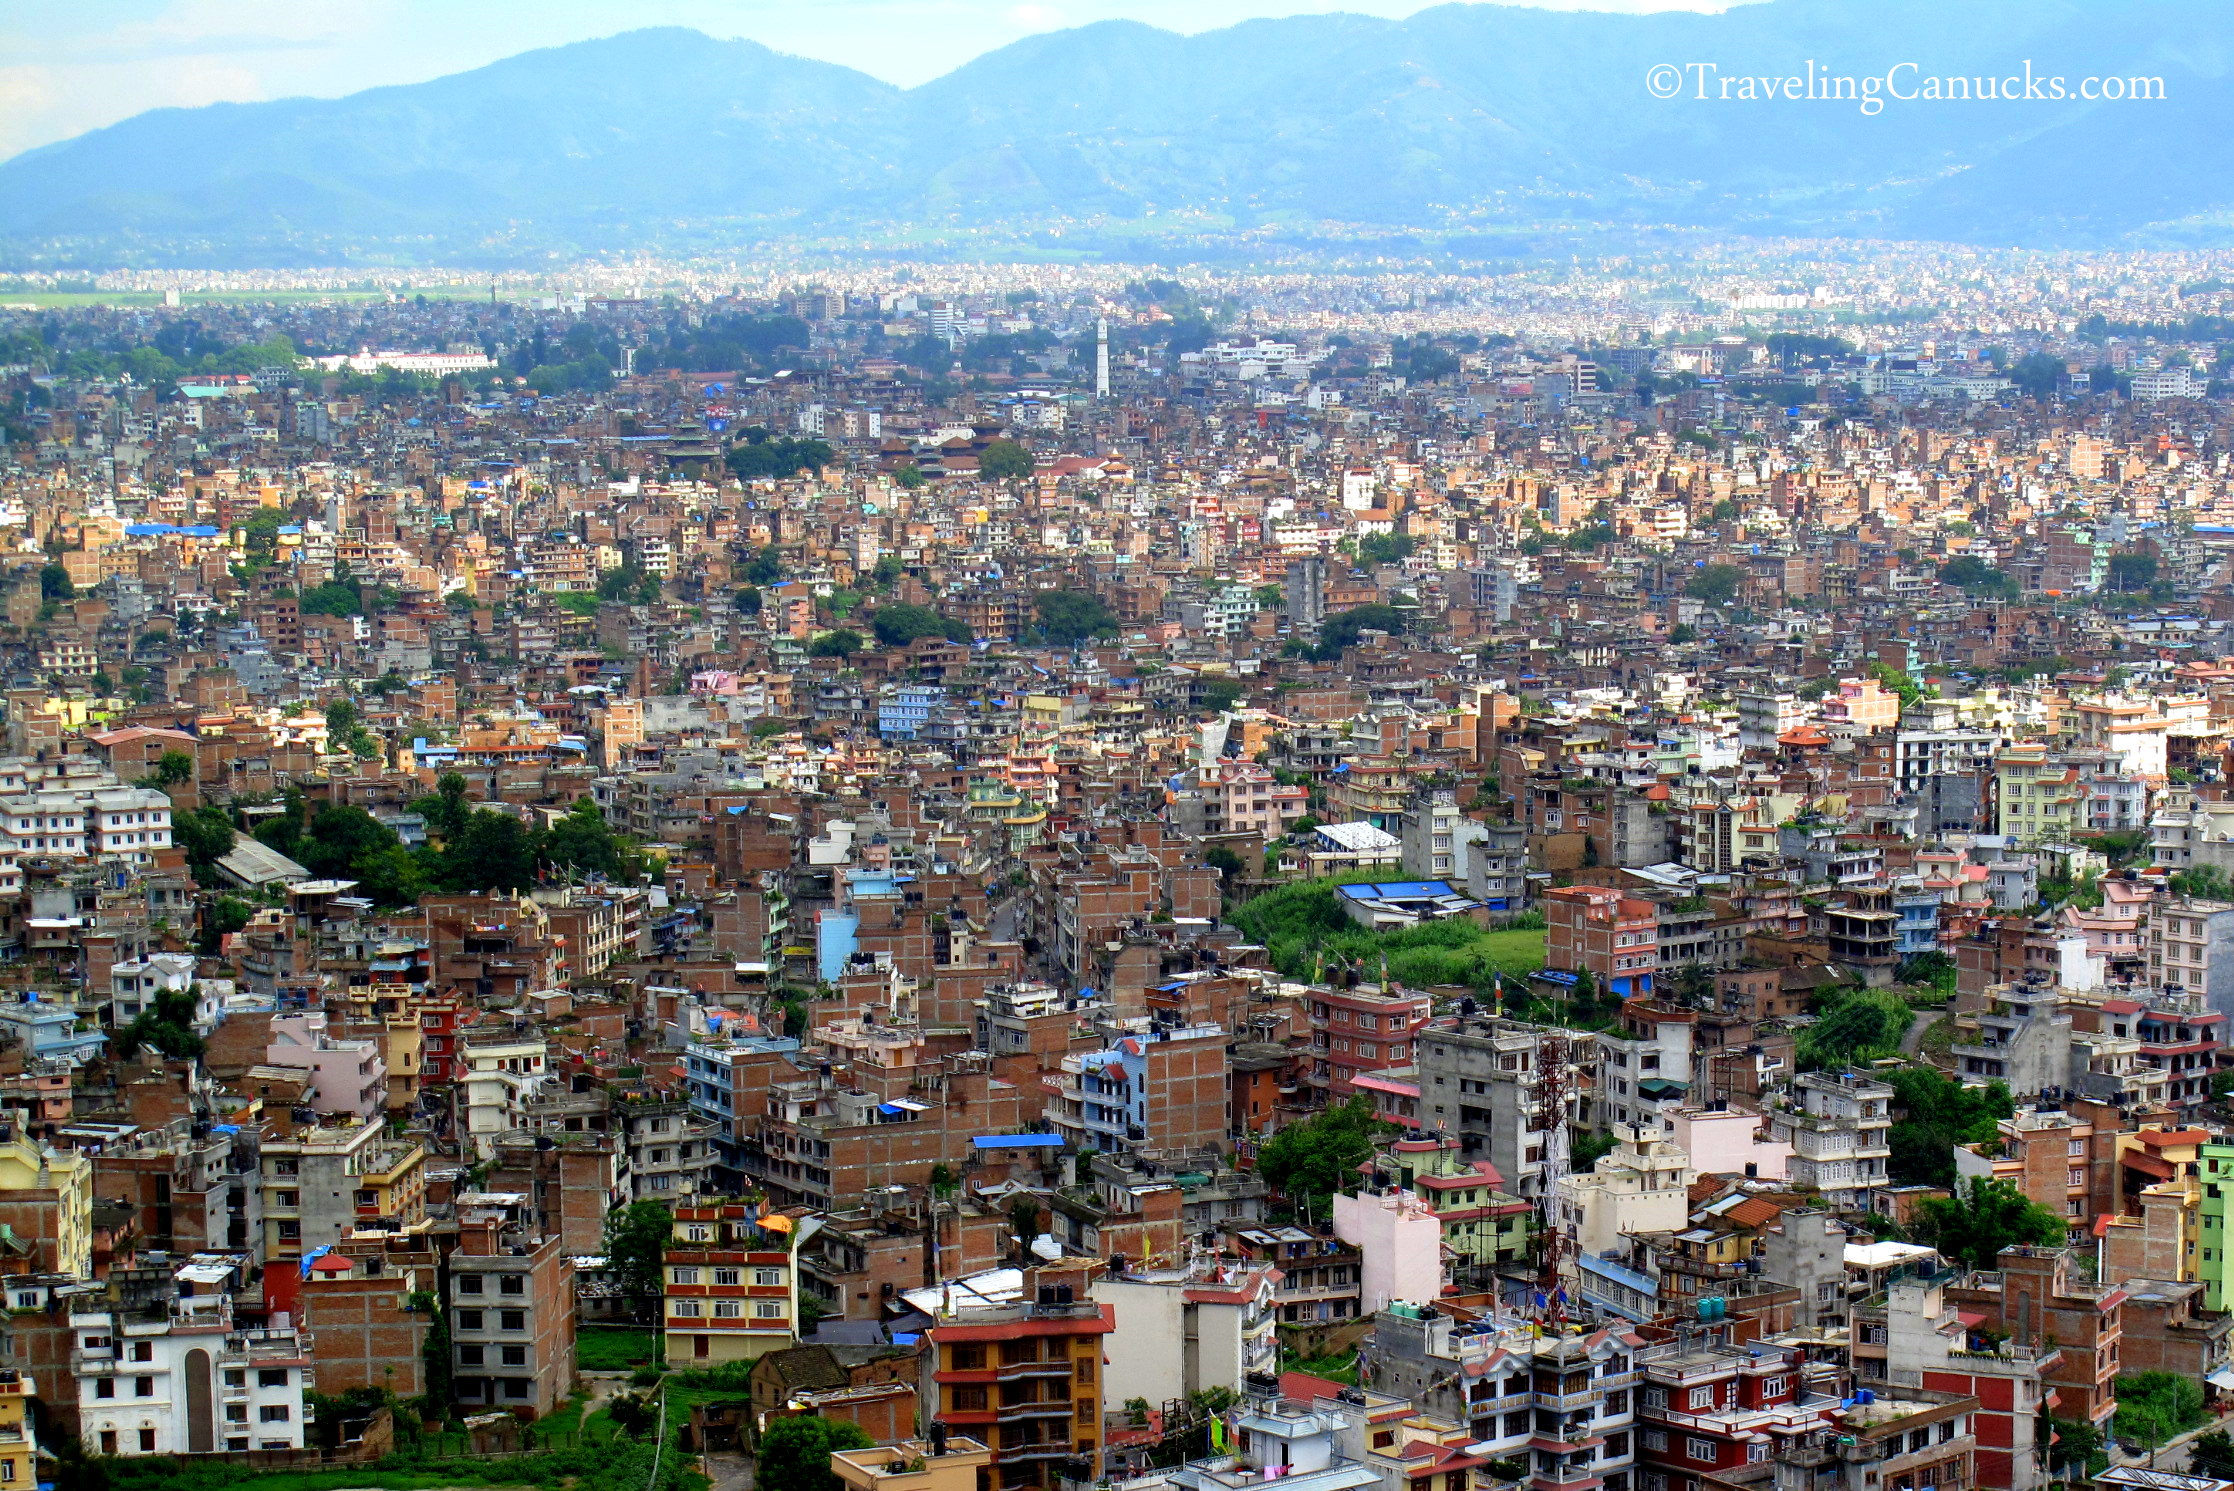 Photo of the Week: Congested Kathmandu Valley in Nepal